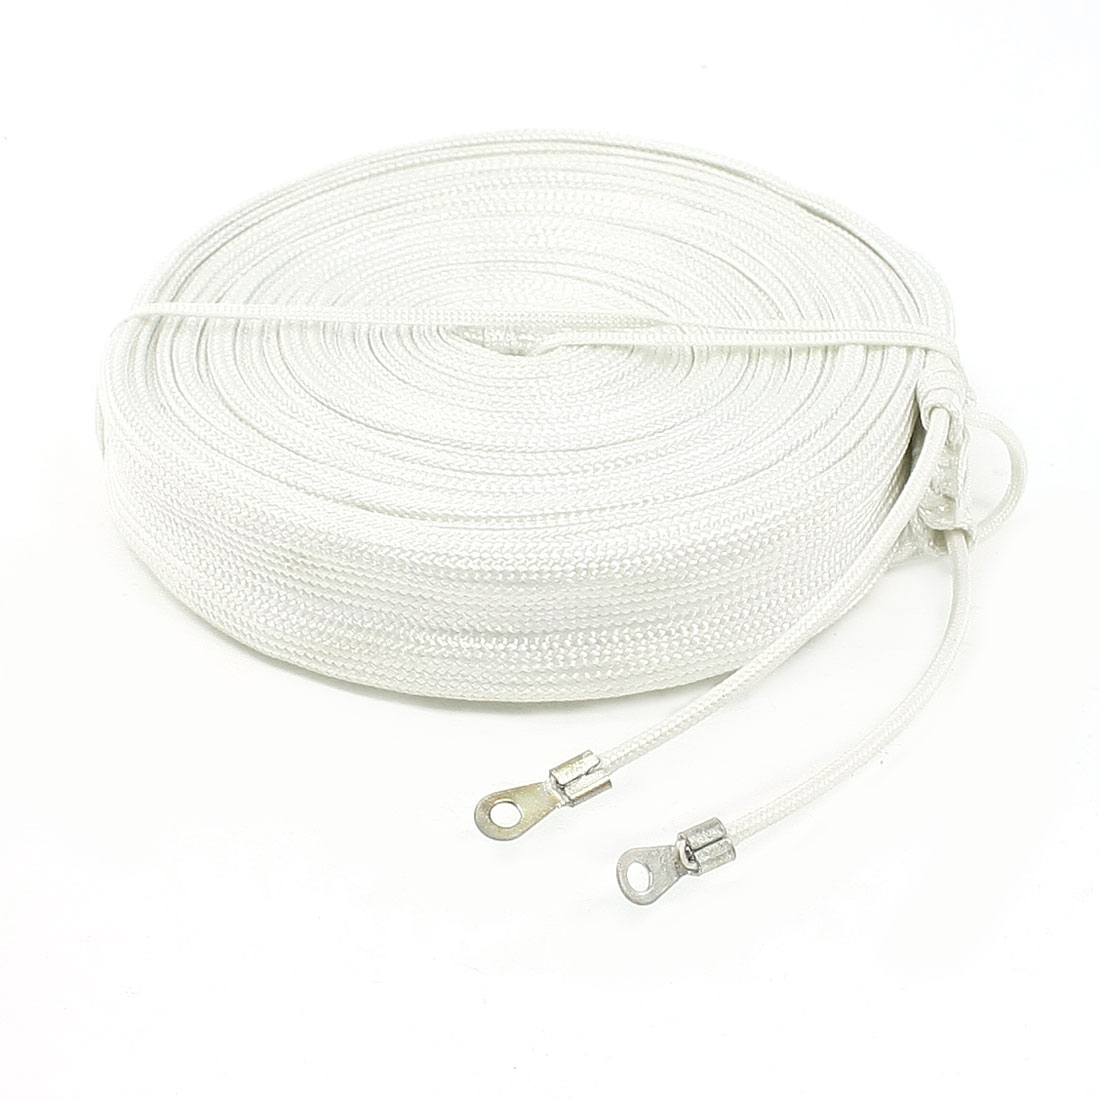 220V 400W 4M Length Insulated High Temperature Resistant Glass Fiber Band White